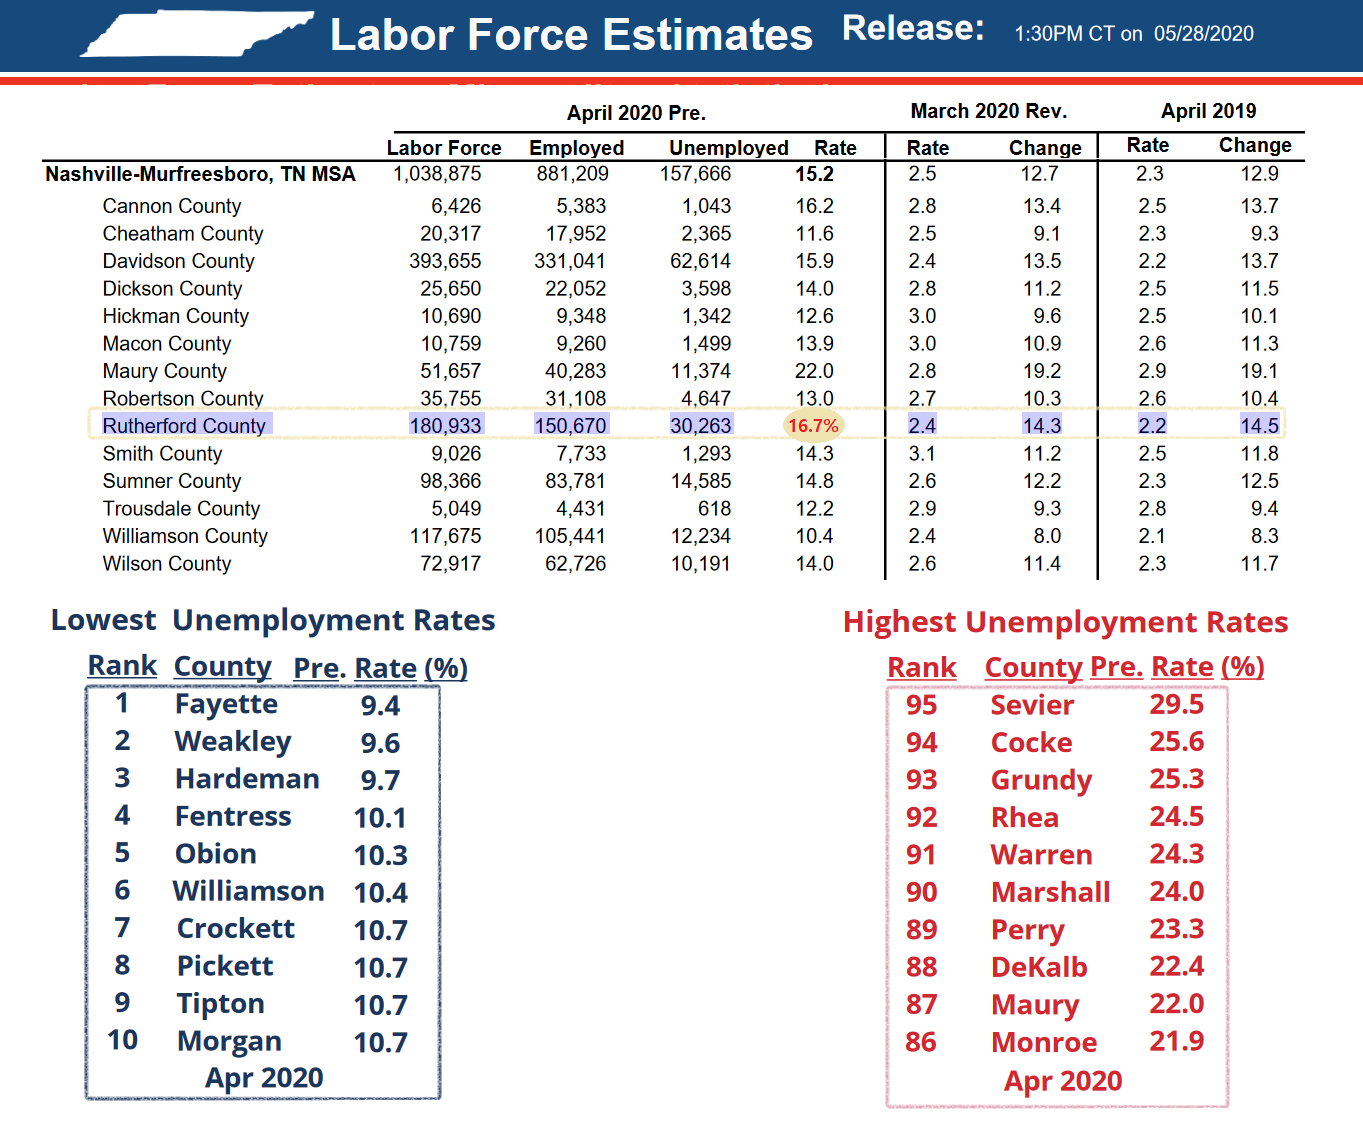 Rutherford County UNEMPLOYMENT Rate Stands at 16.7%